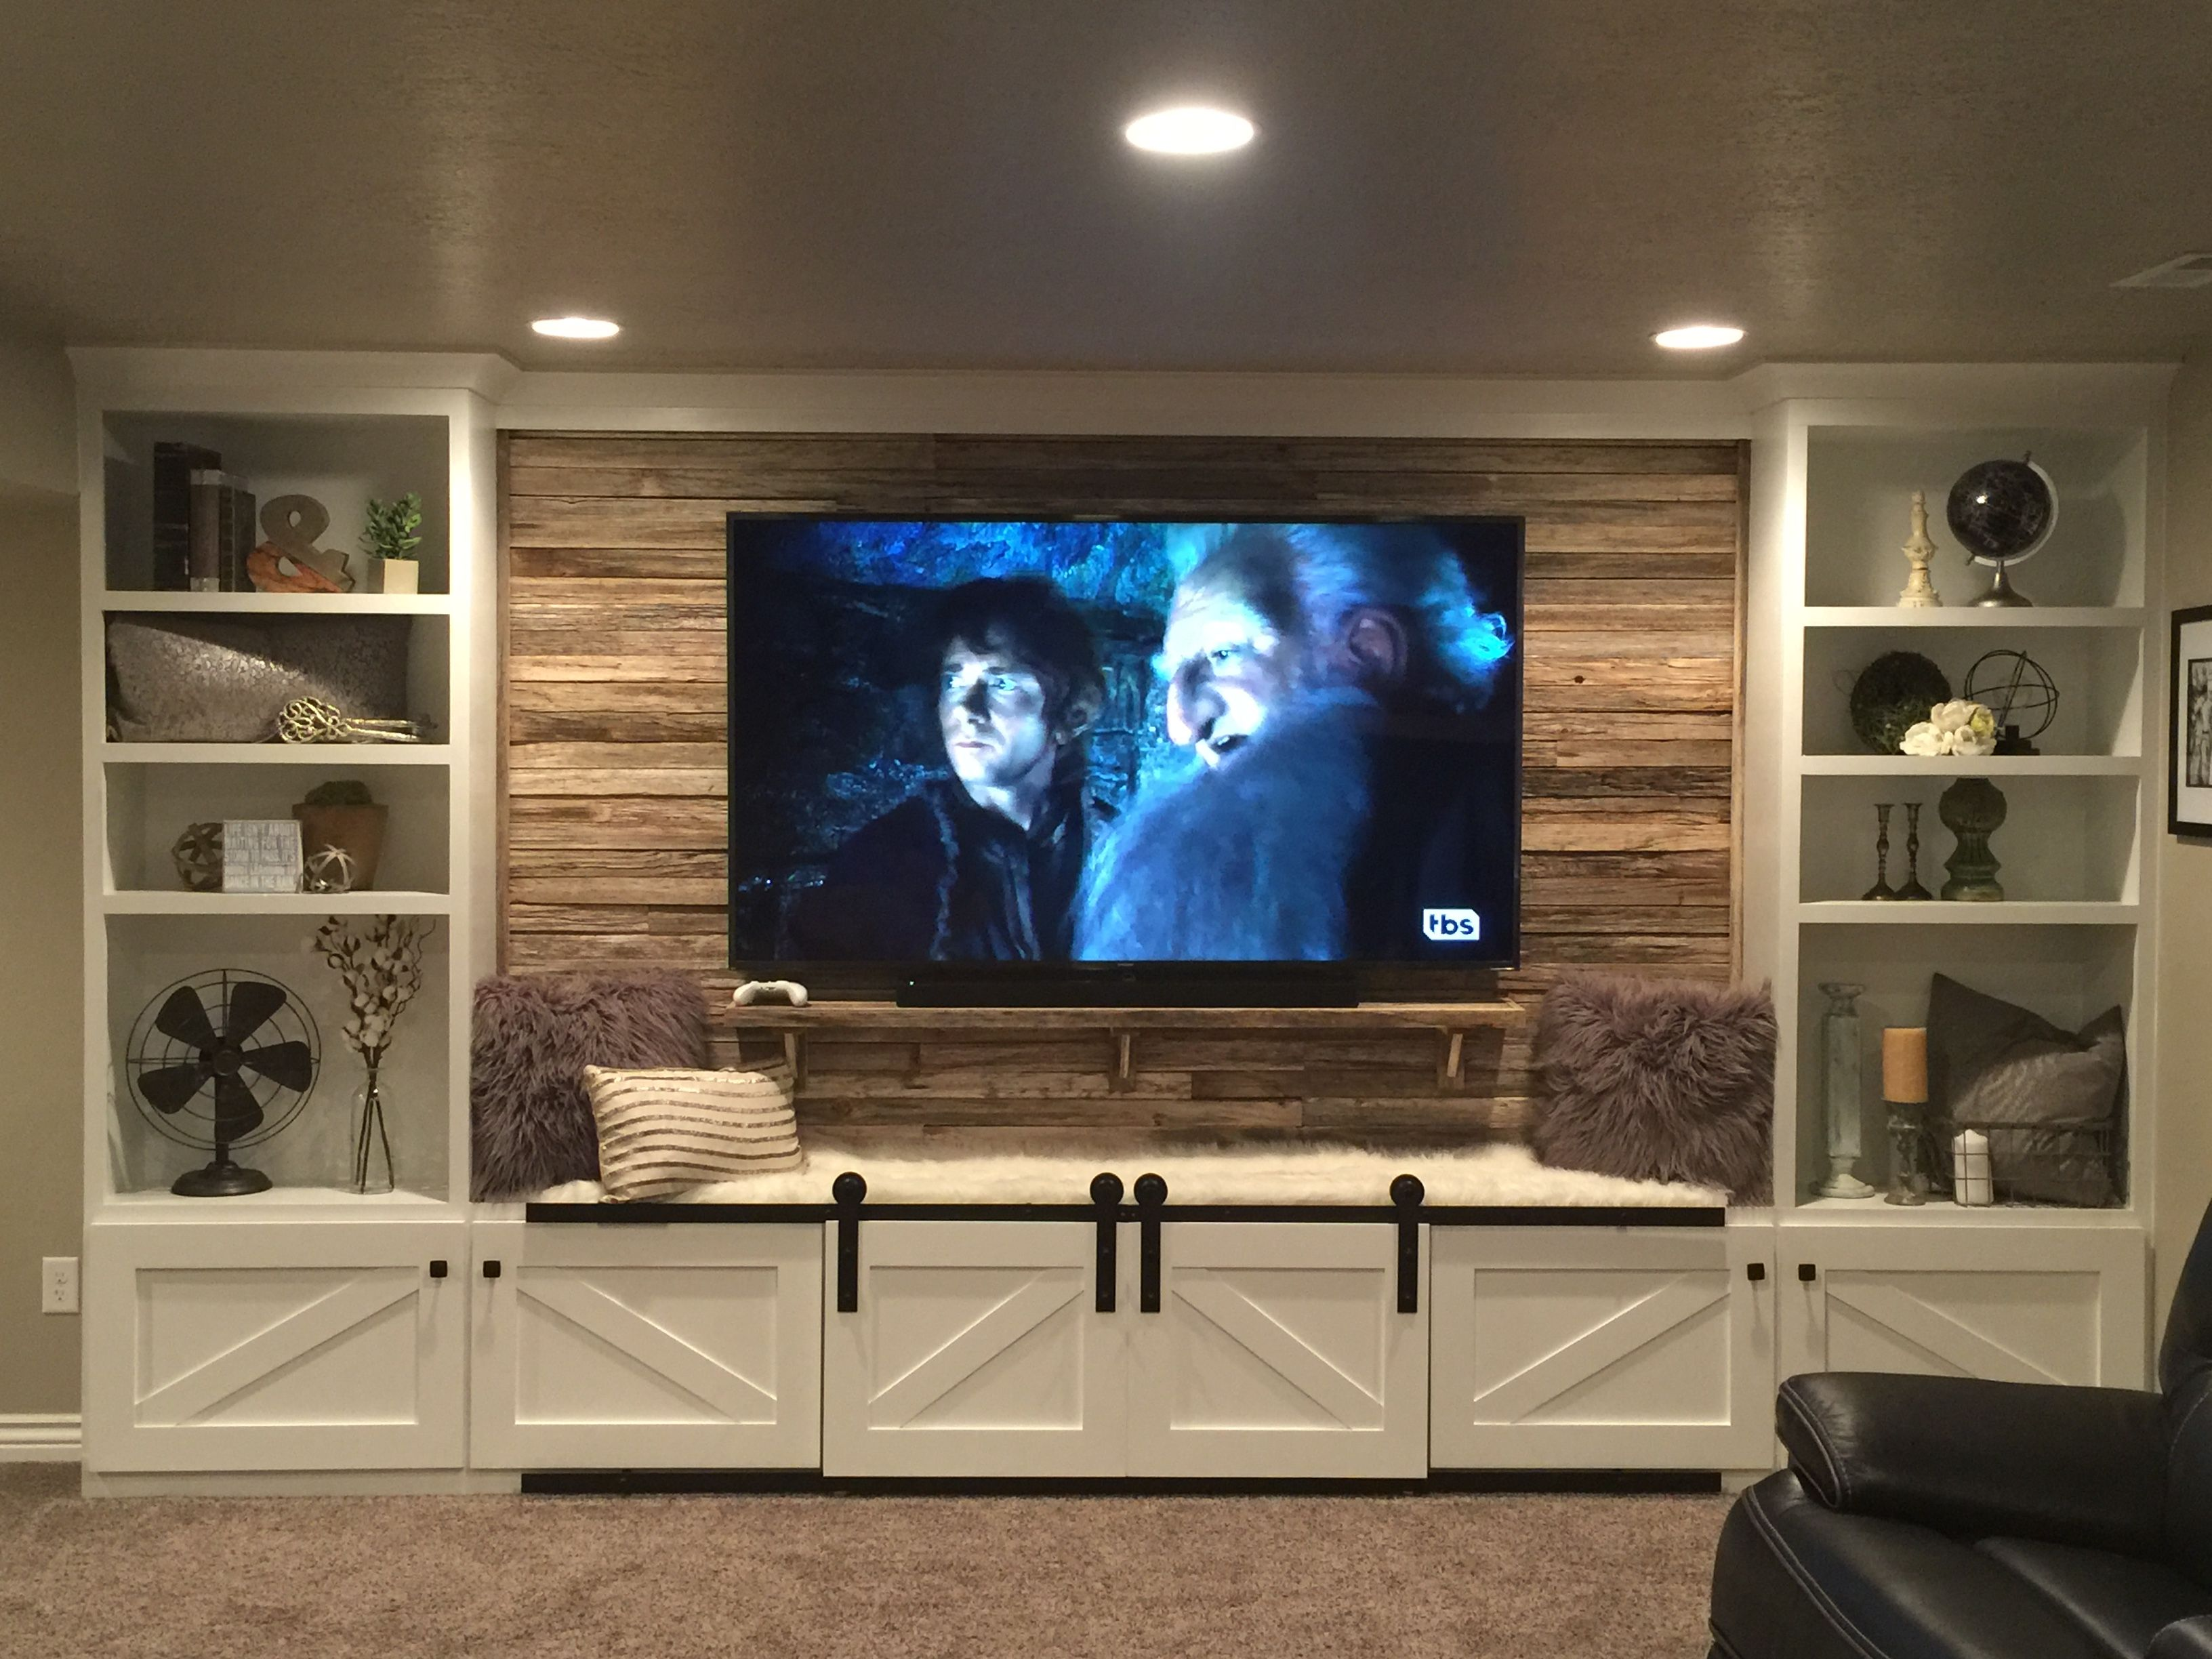 living room entertainment center 17 DIY Entertainment Center Ideas and Designs For Your New Home  living room entertainment center